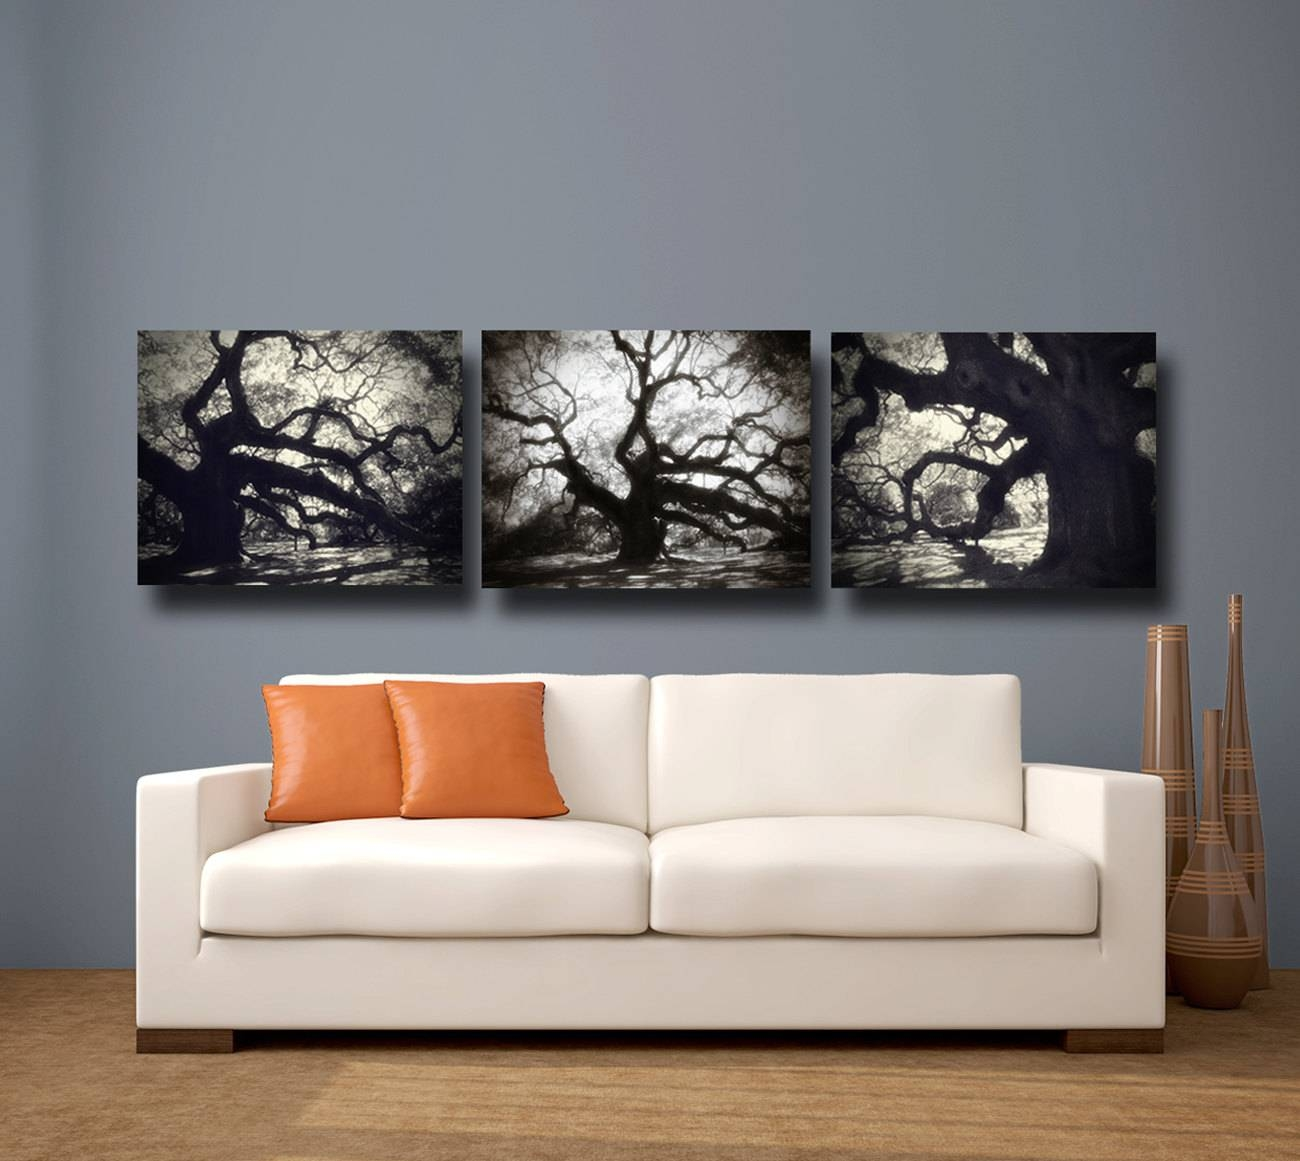 Wall Canvas Art Ideas Black And White L Lata | Targovci Throughout Current Black And White Wall Art Sets (View 5 of 20)